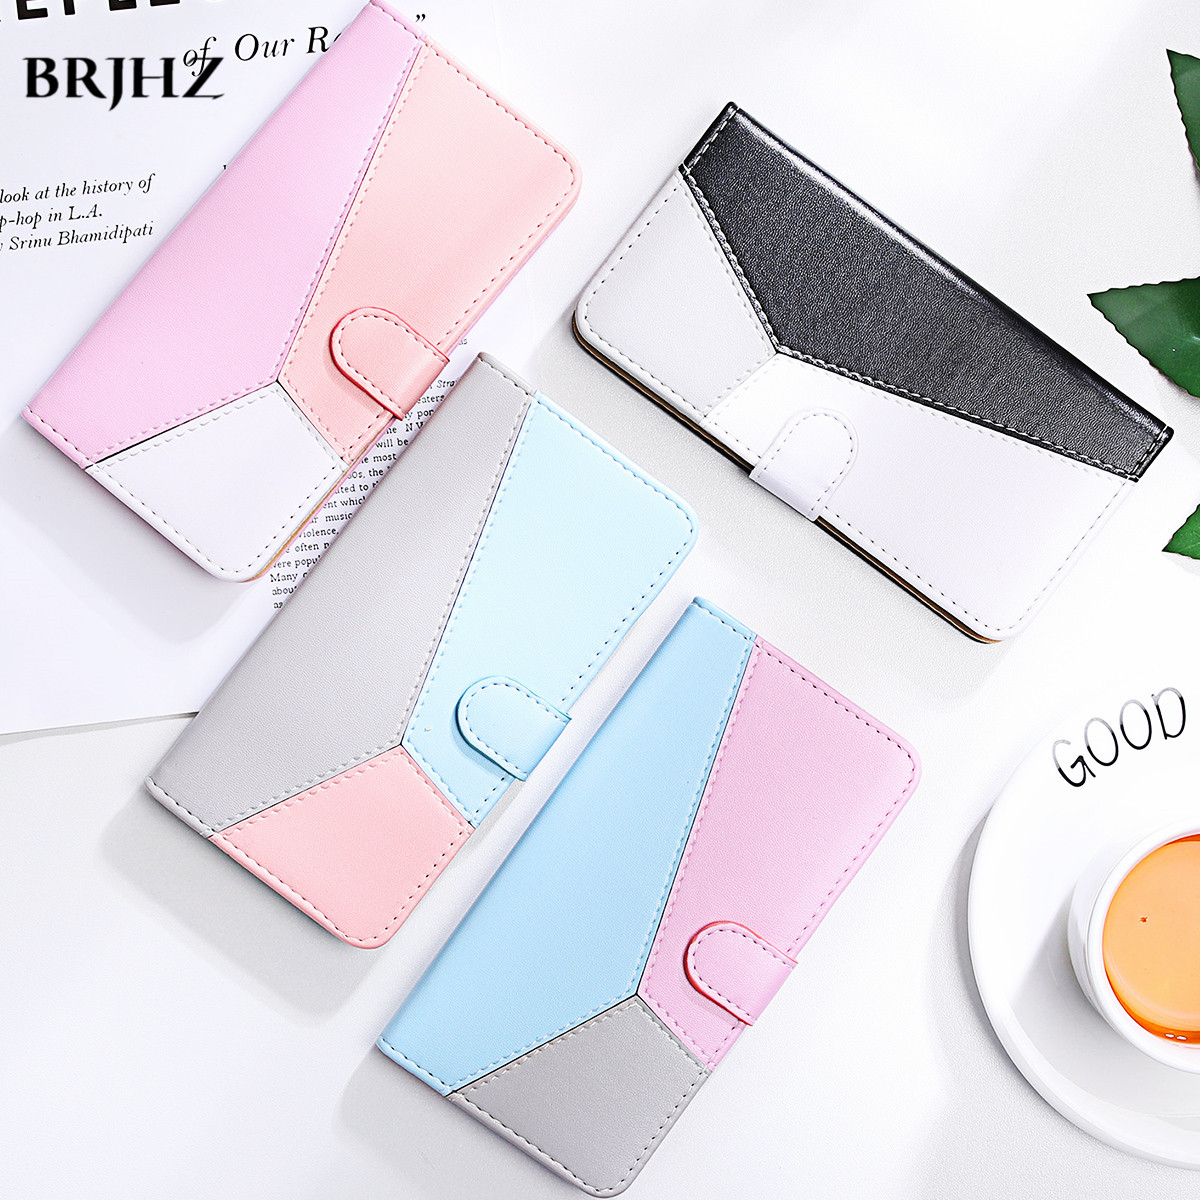 <font><b>Y5</b></font>(2019) <font><b>Case</b></font> <font><b>Leather</b></font> Flip <font><b>Case</b></font> on for <font><b>Huawei</b></font> <font><b>Y5</b></font> 2019 Coque Wallet Magnetic Cover for <font><b>Huawei</b></font> <font><b>Y5</b></font> 2017 Y 5 Prime <font><b>2018</b></font> Phone <font><b>Cases</b></font> image